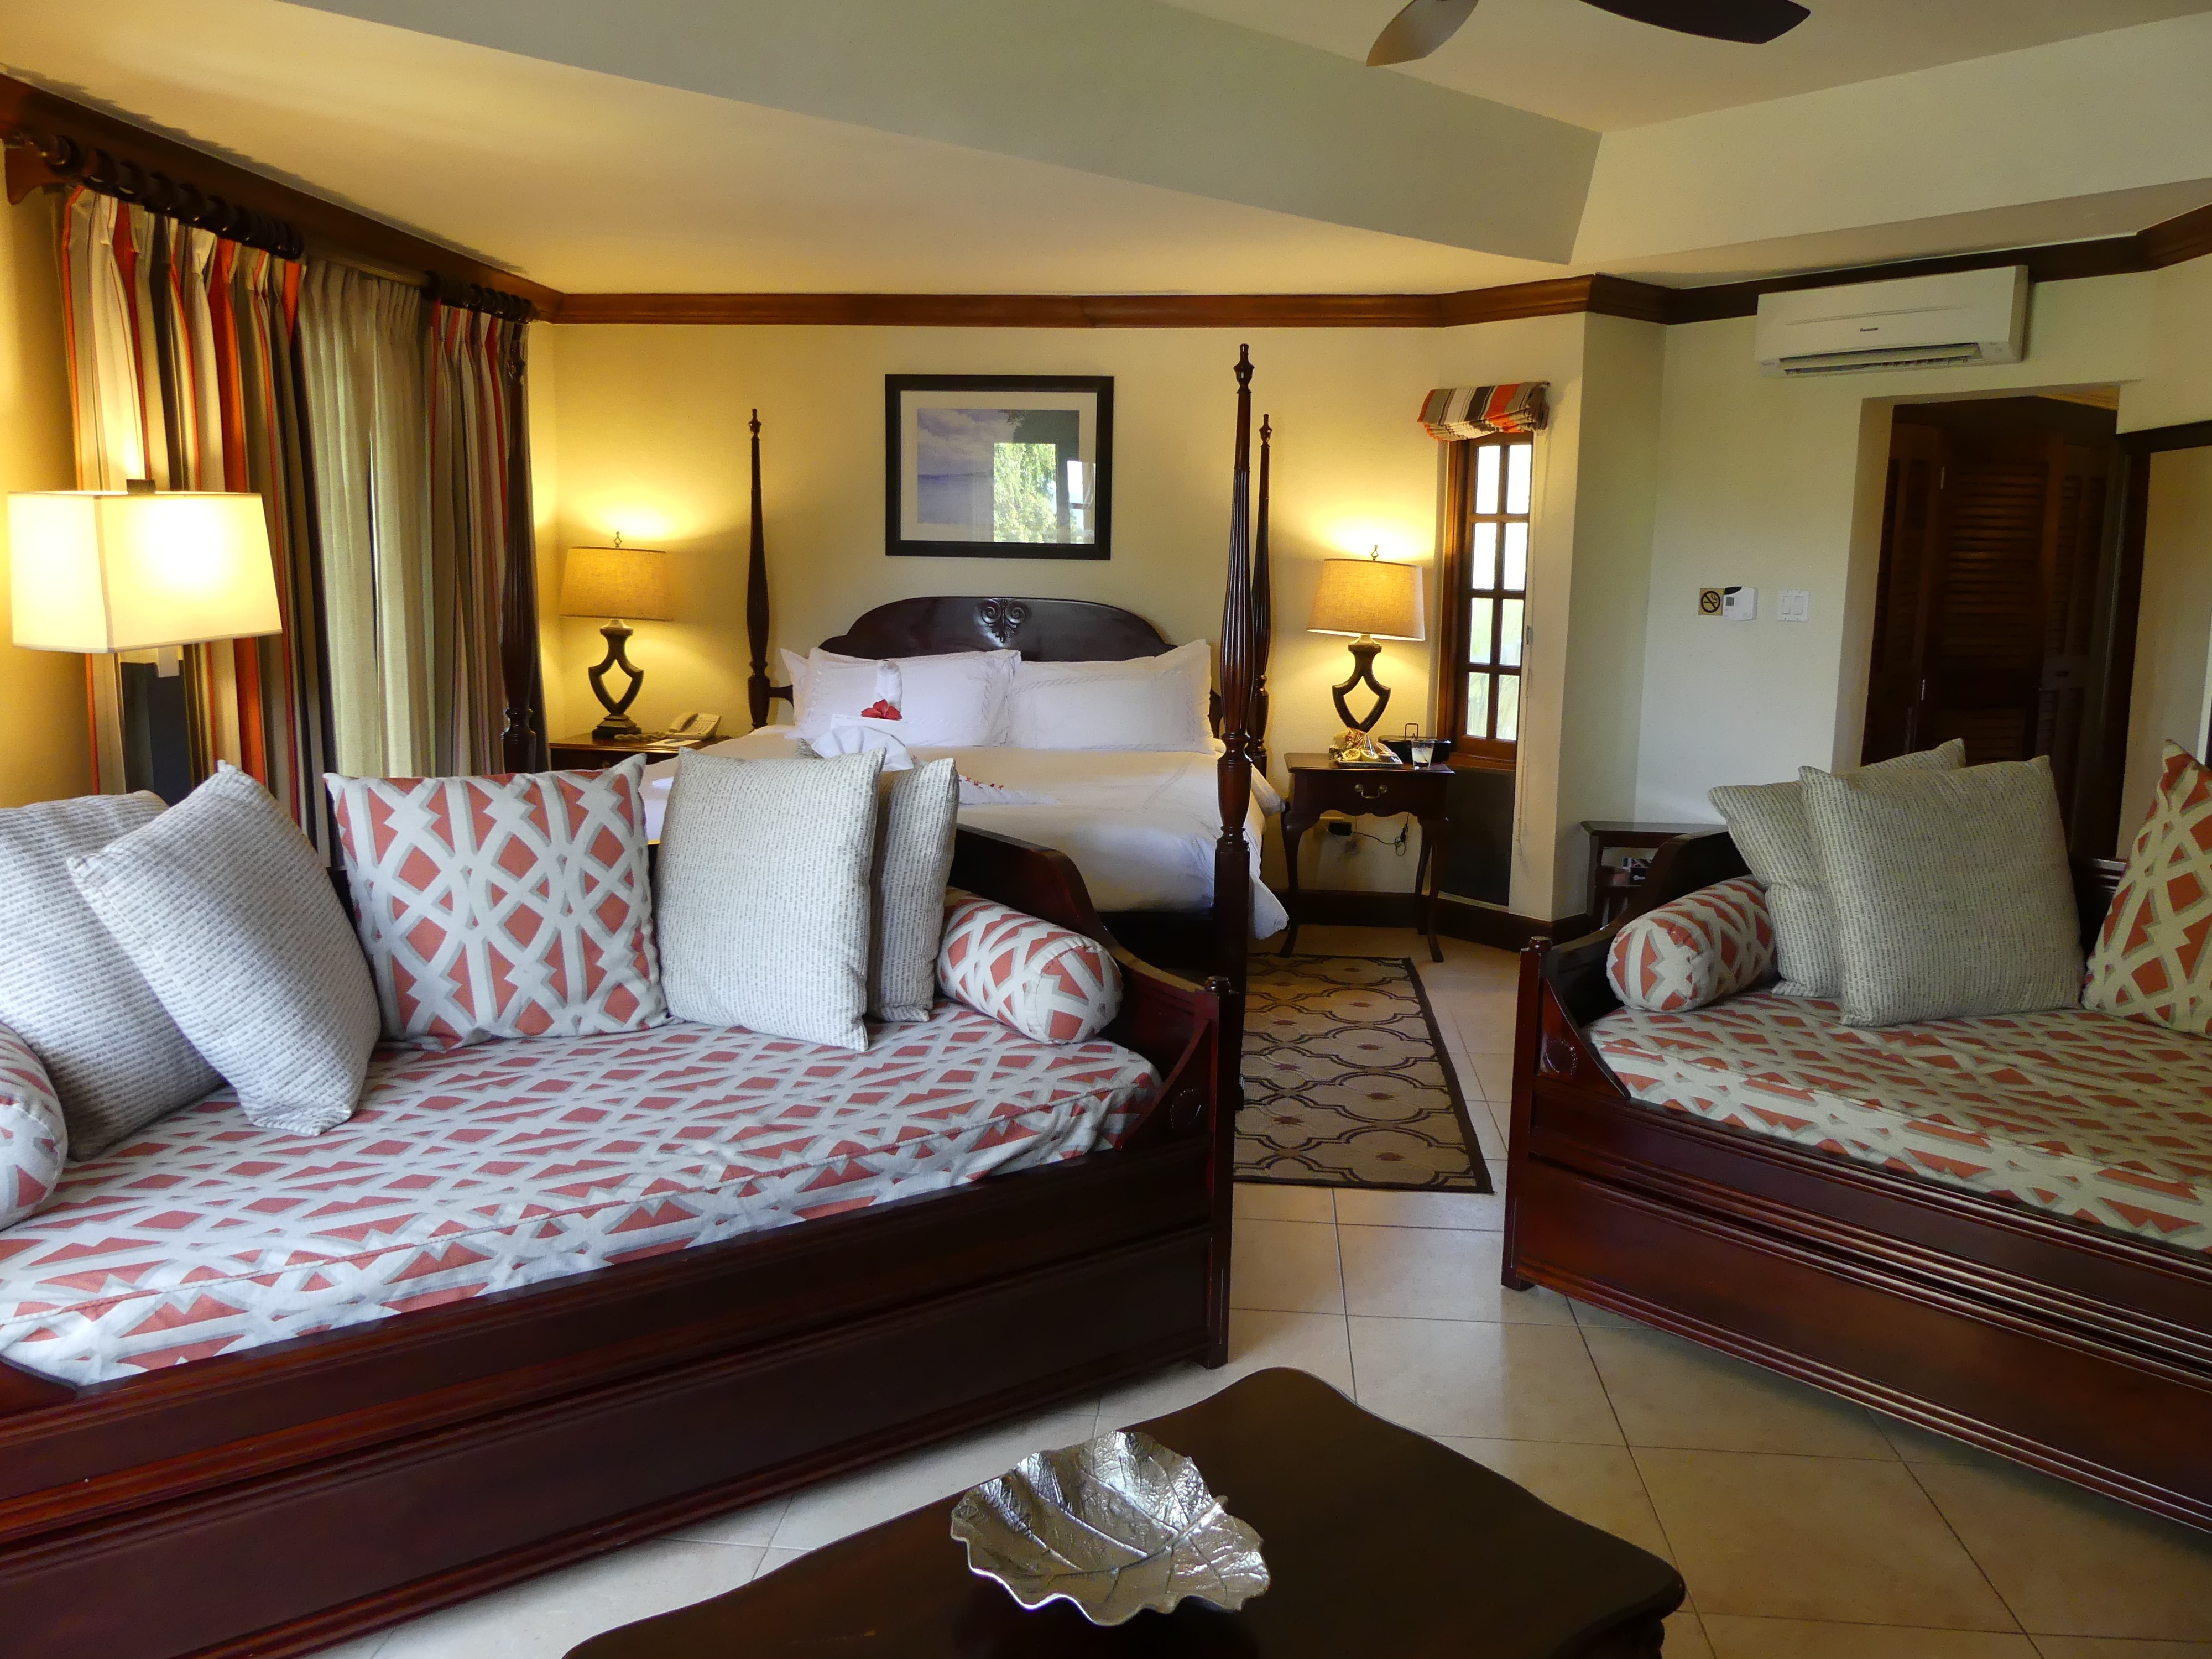 Rooms: How To Choose Your Room At Beaches Negril Resort & Spa